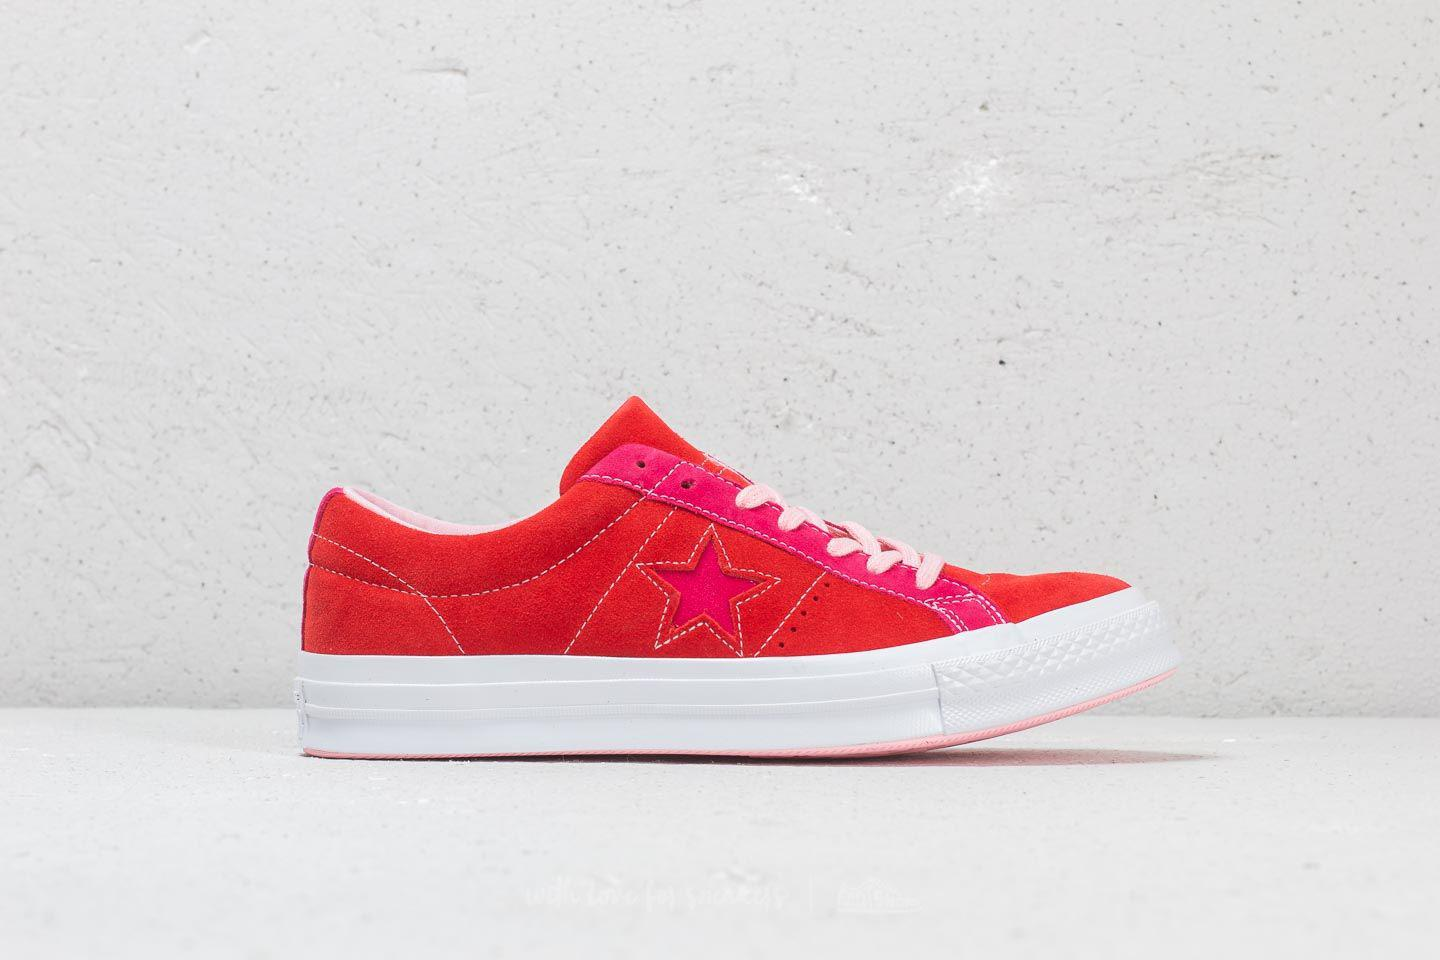 Lyst - Converse One Star Ox Enamel Red  Pink Pop in Pink for Men b7a212f3c